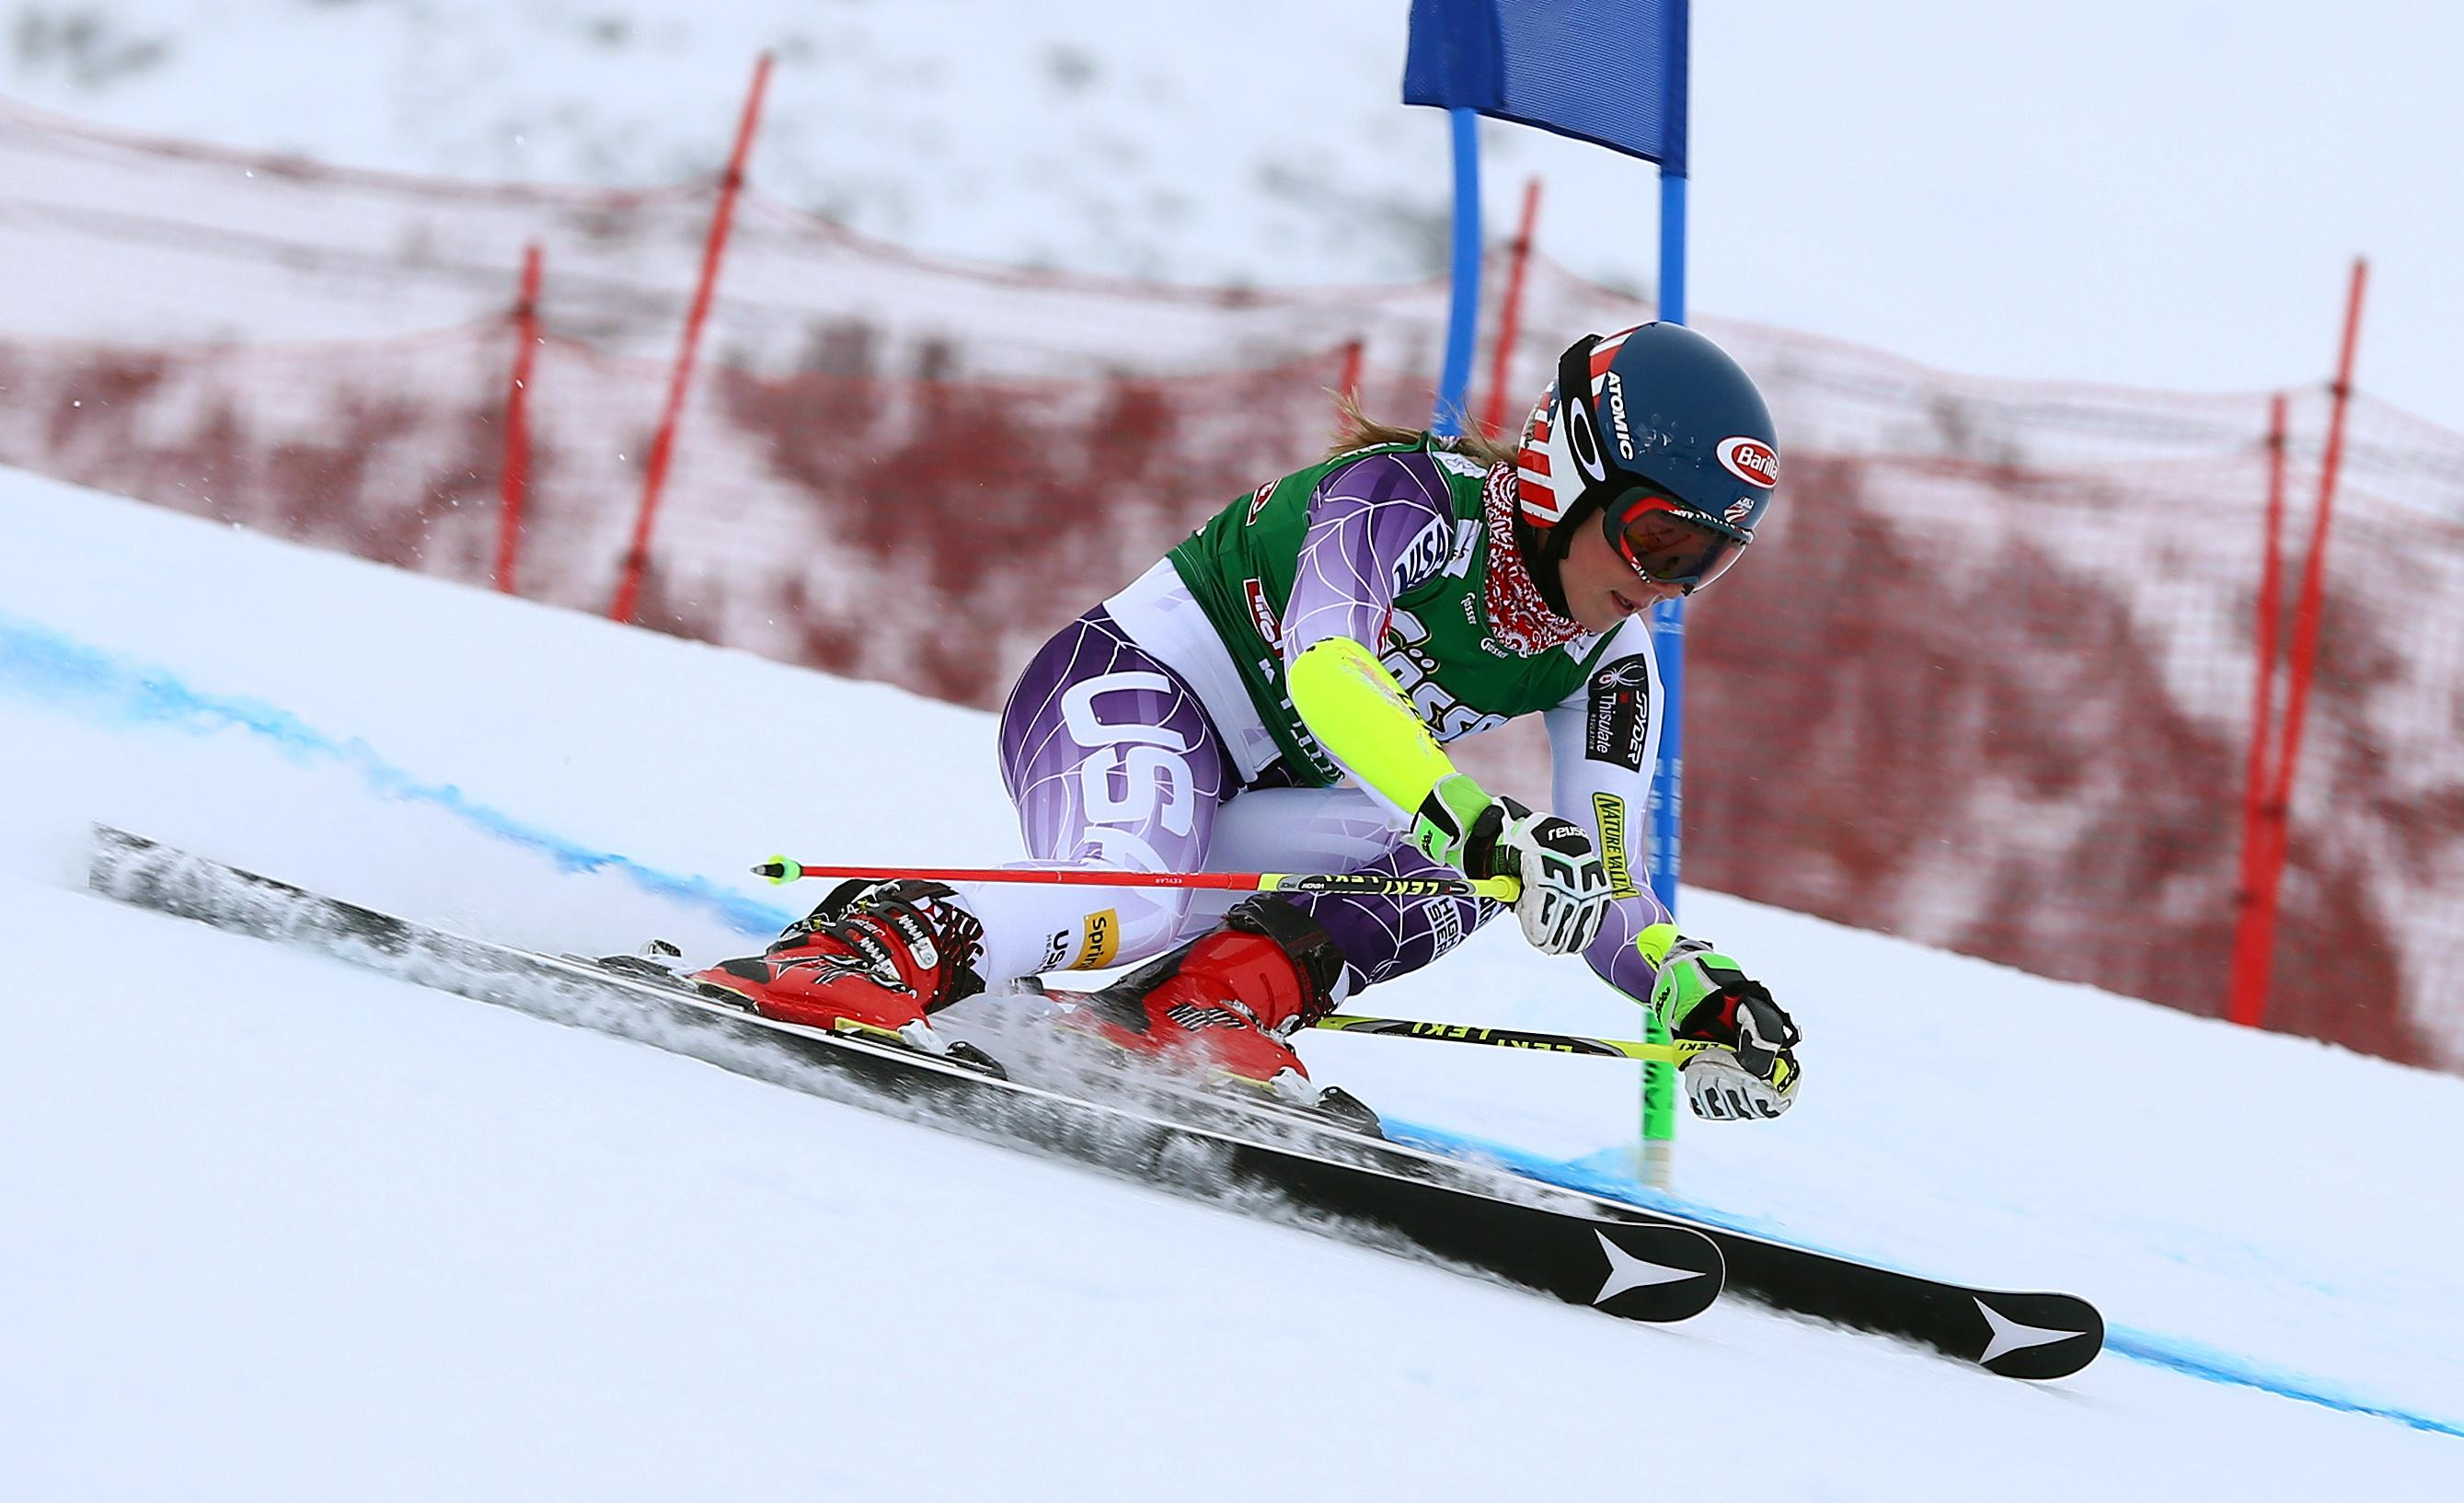 Swedish skier Hector takes GS for 1st career win